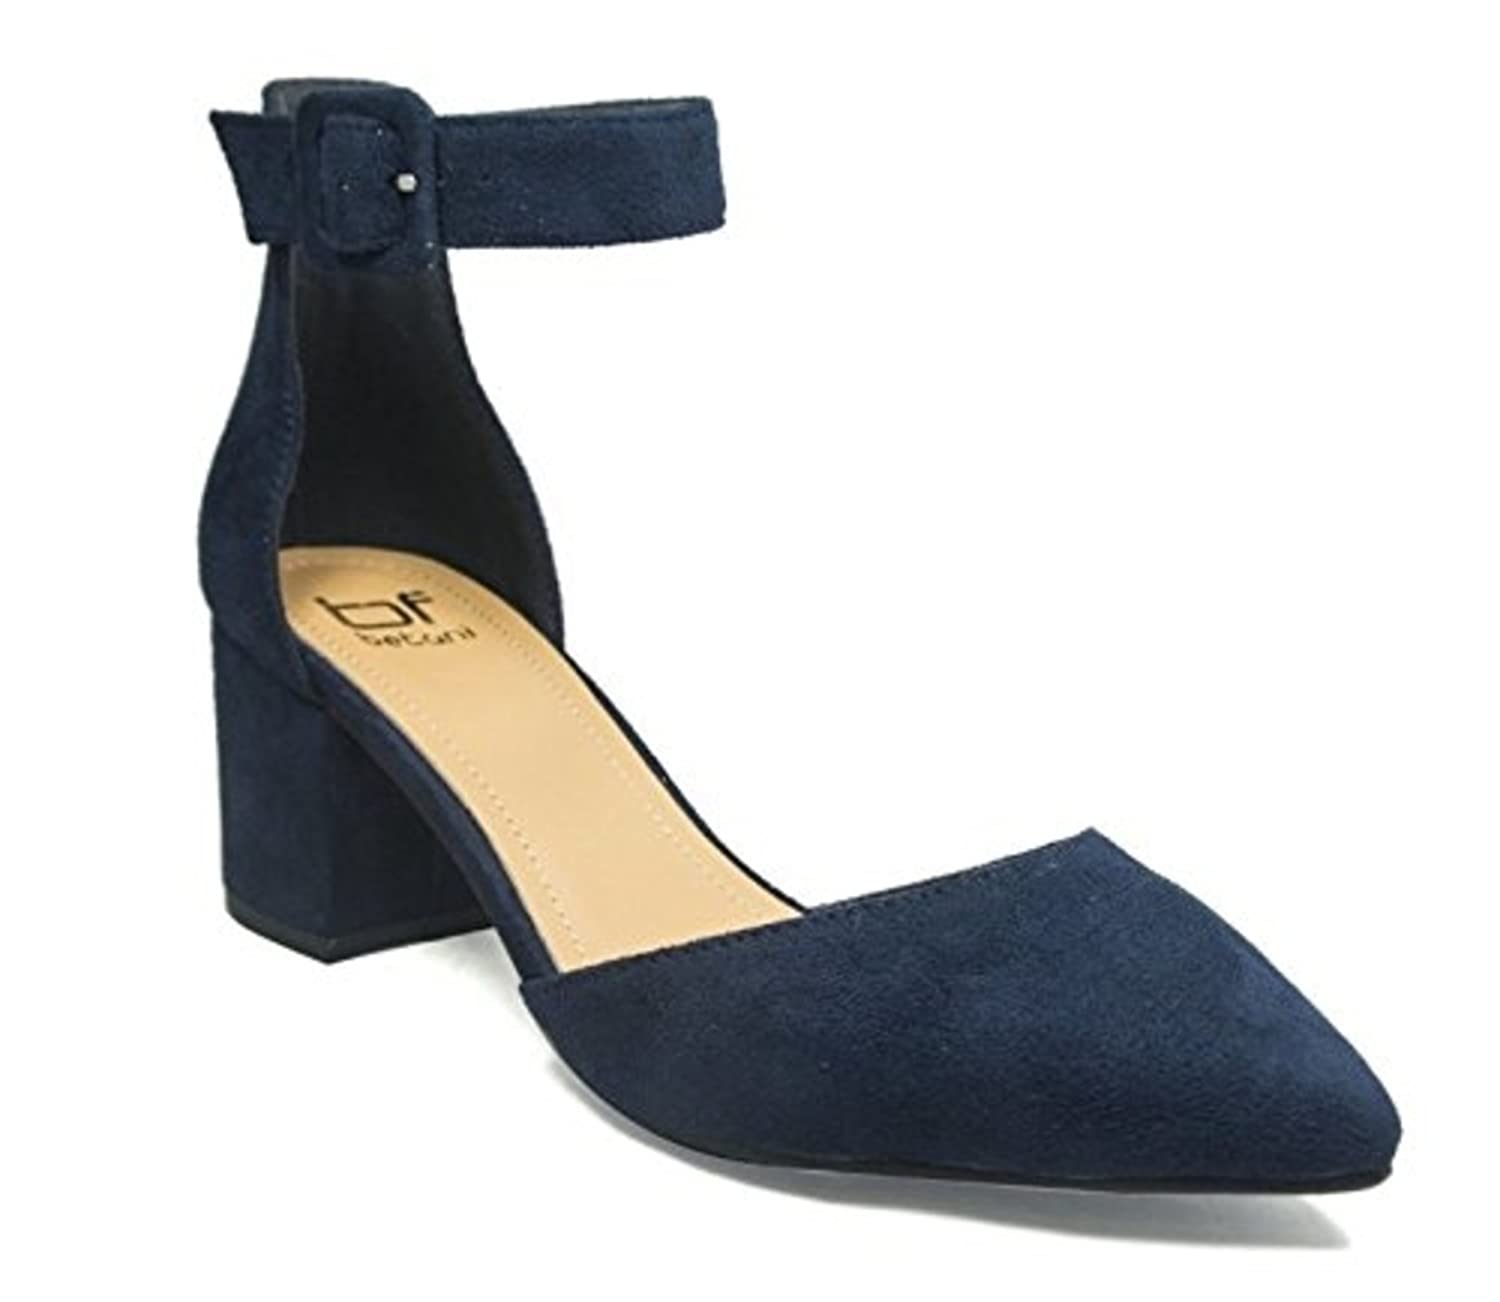 67552574192 Betani Womens Irene-5 Close Toe Block Heel Navy free shipping ...